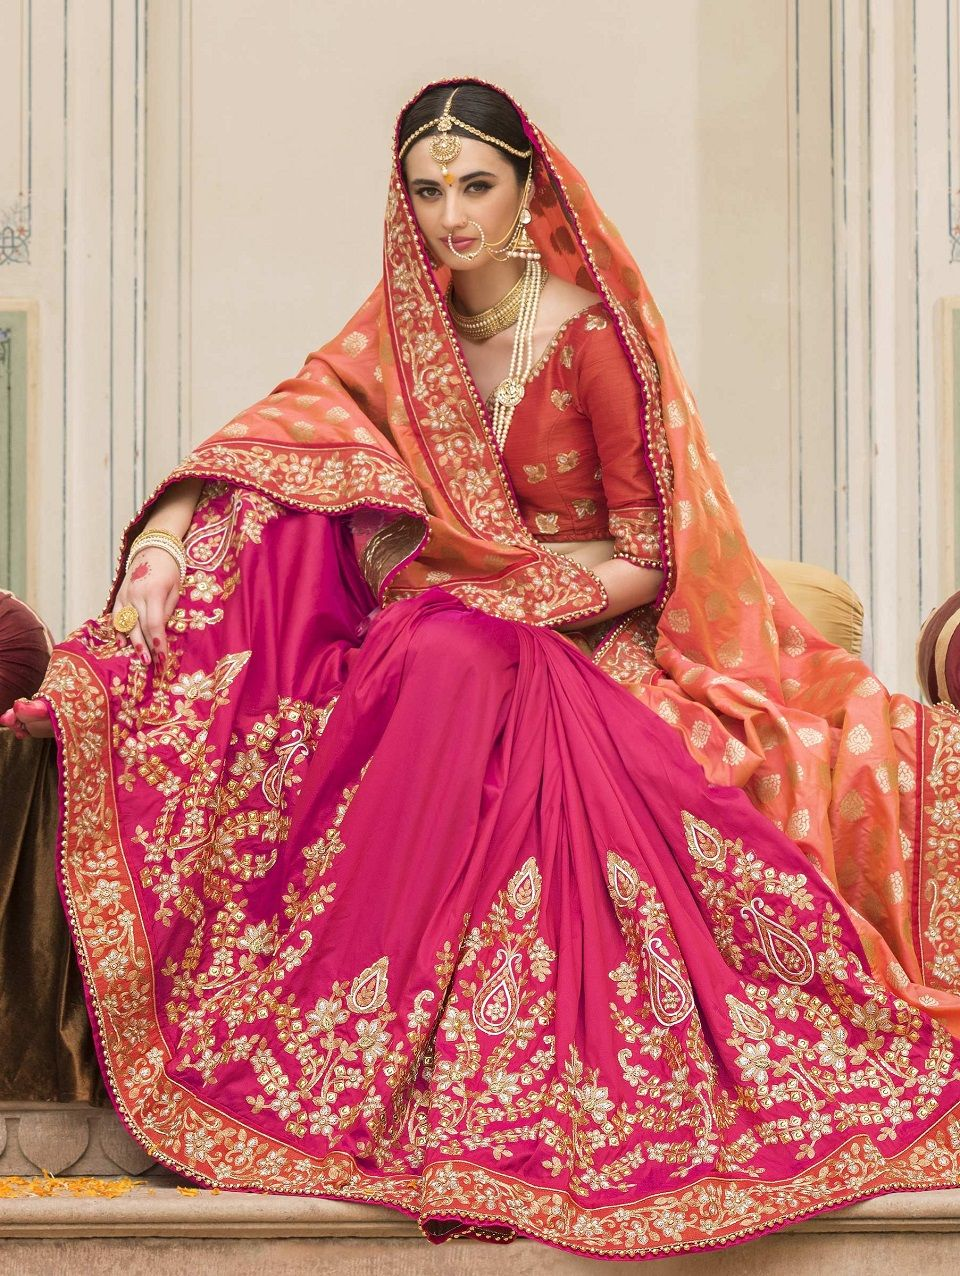 Indian Wedding Saree Latest Designs Trends Collection Includes Beautiful Styles Of Bridal Wear Sarees For Pakistani Bengali Asian Women